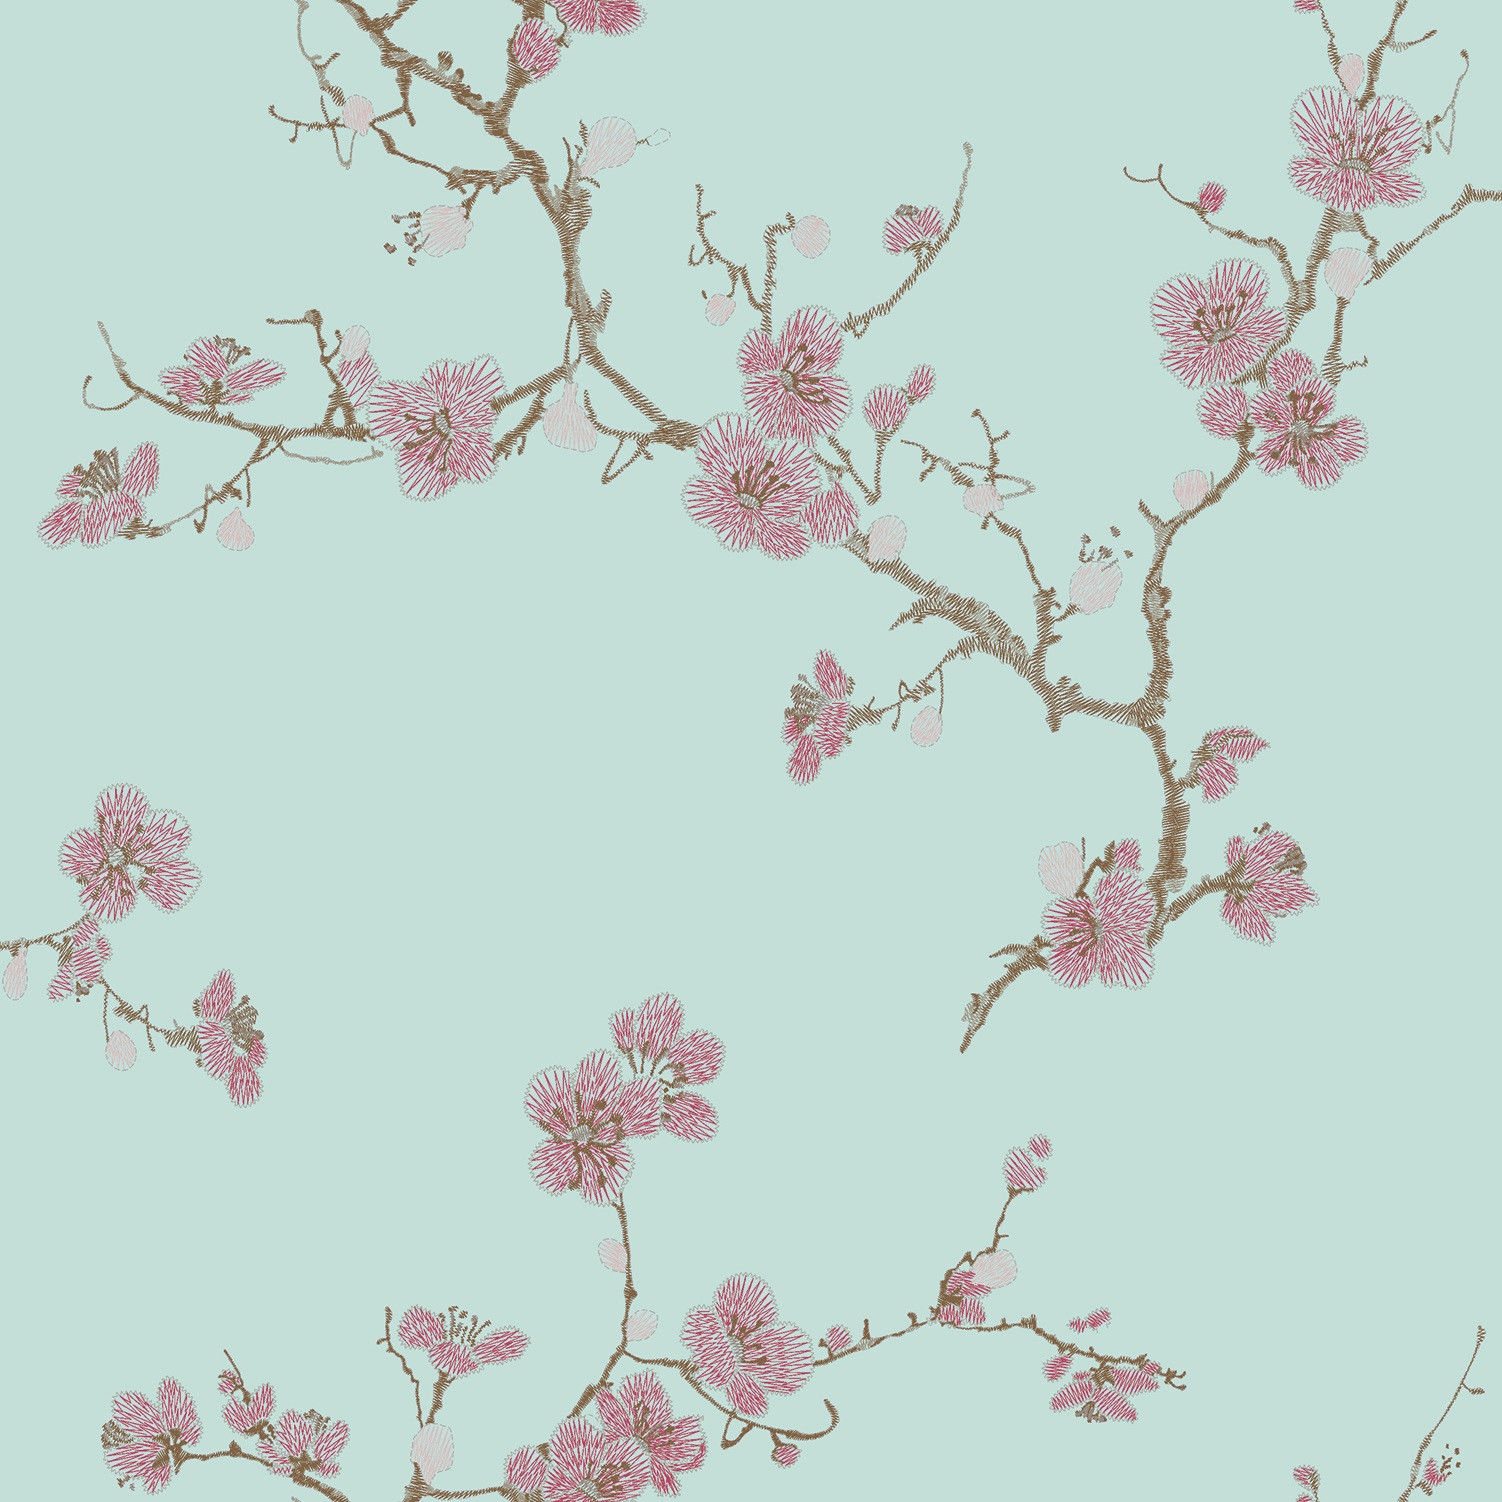 Flower Asian Style Textured Imitate Stitchwork Teal Wallpaper eBay 1502x1502